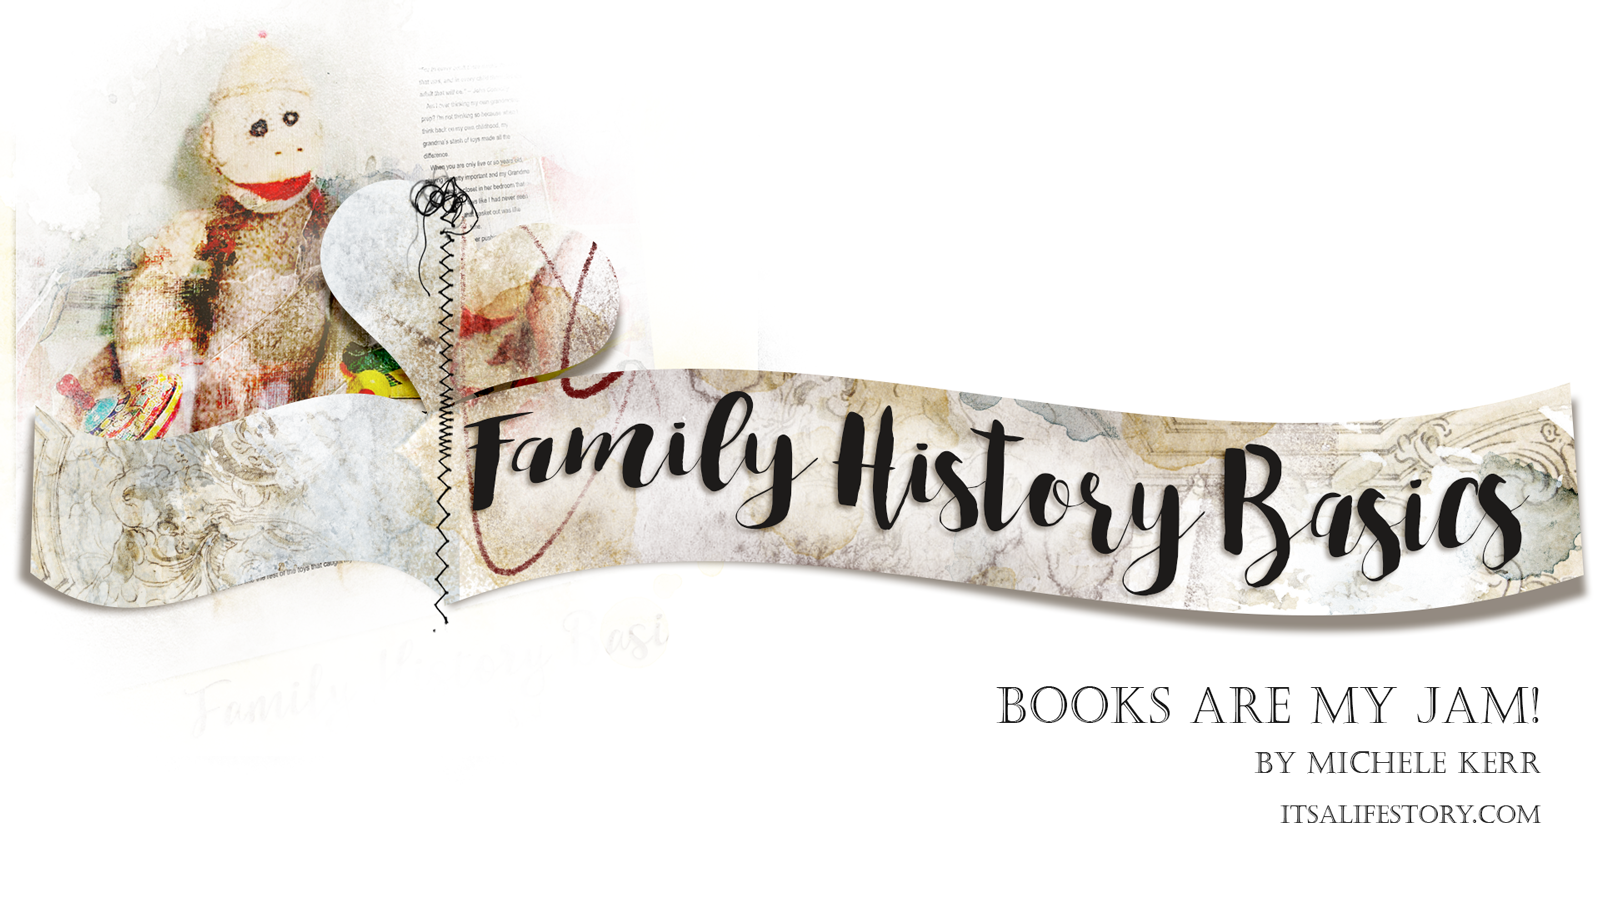 ItsALifeStory.com _ FAMILY HISTORY BASICS - Books are My Jam